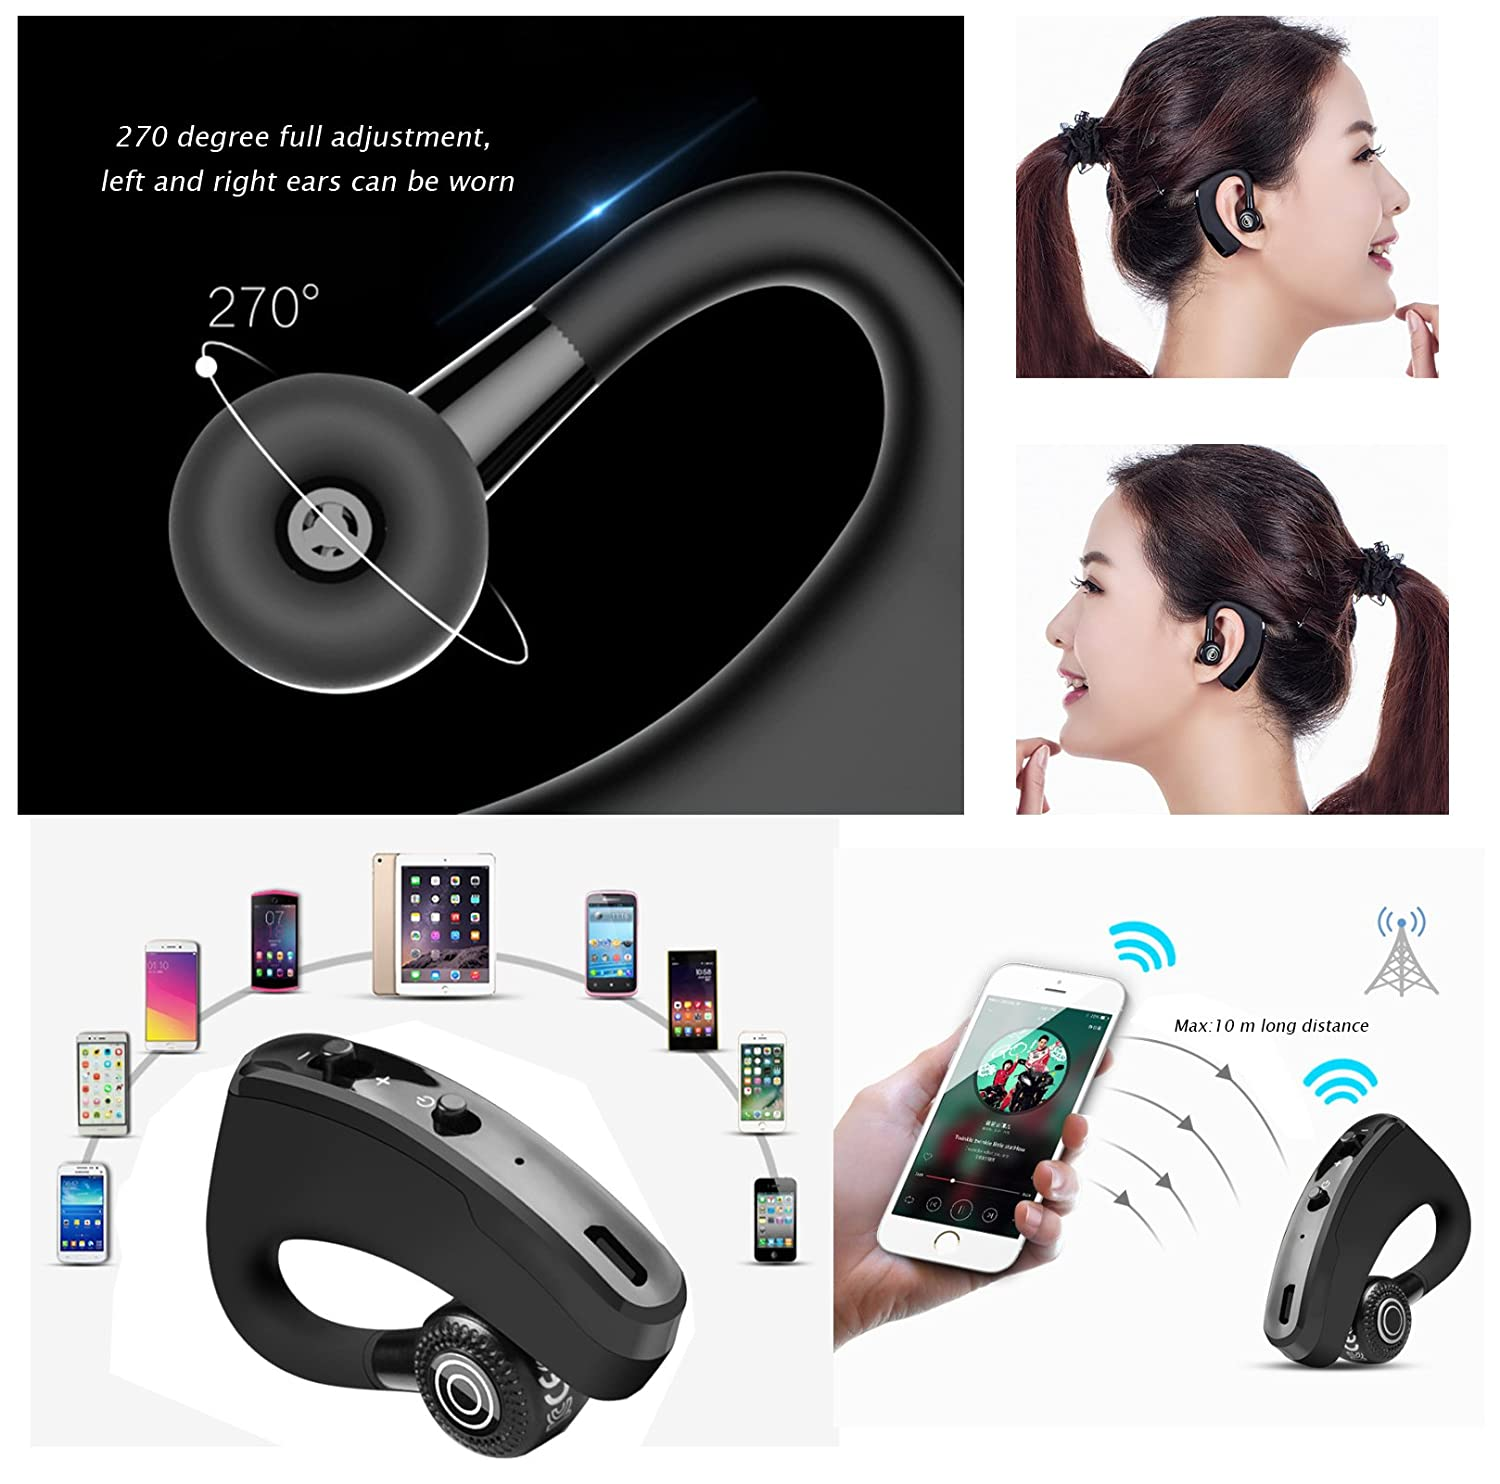 Bluetooth Kopfhörer, SOCINY Wireless Headphones Bluetooth Handsfree In-Ear Headphones Noise Canceling for Huawei Mate 20 Pro / Mate 20 / Mate 20 Lite: ...